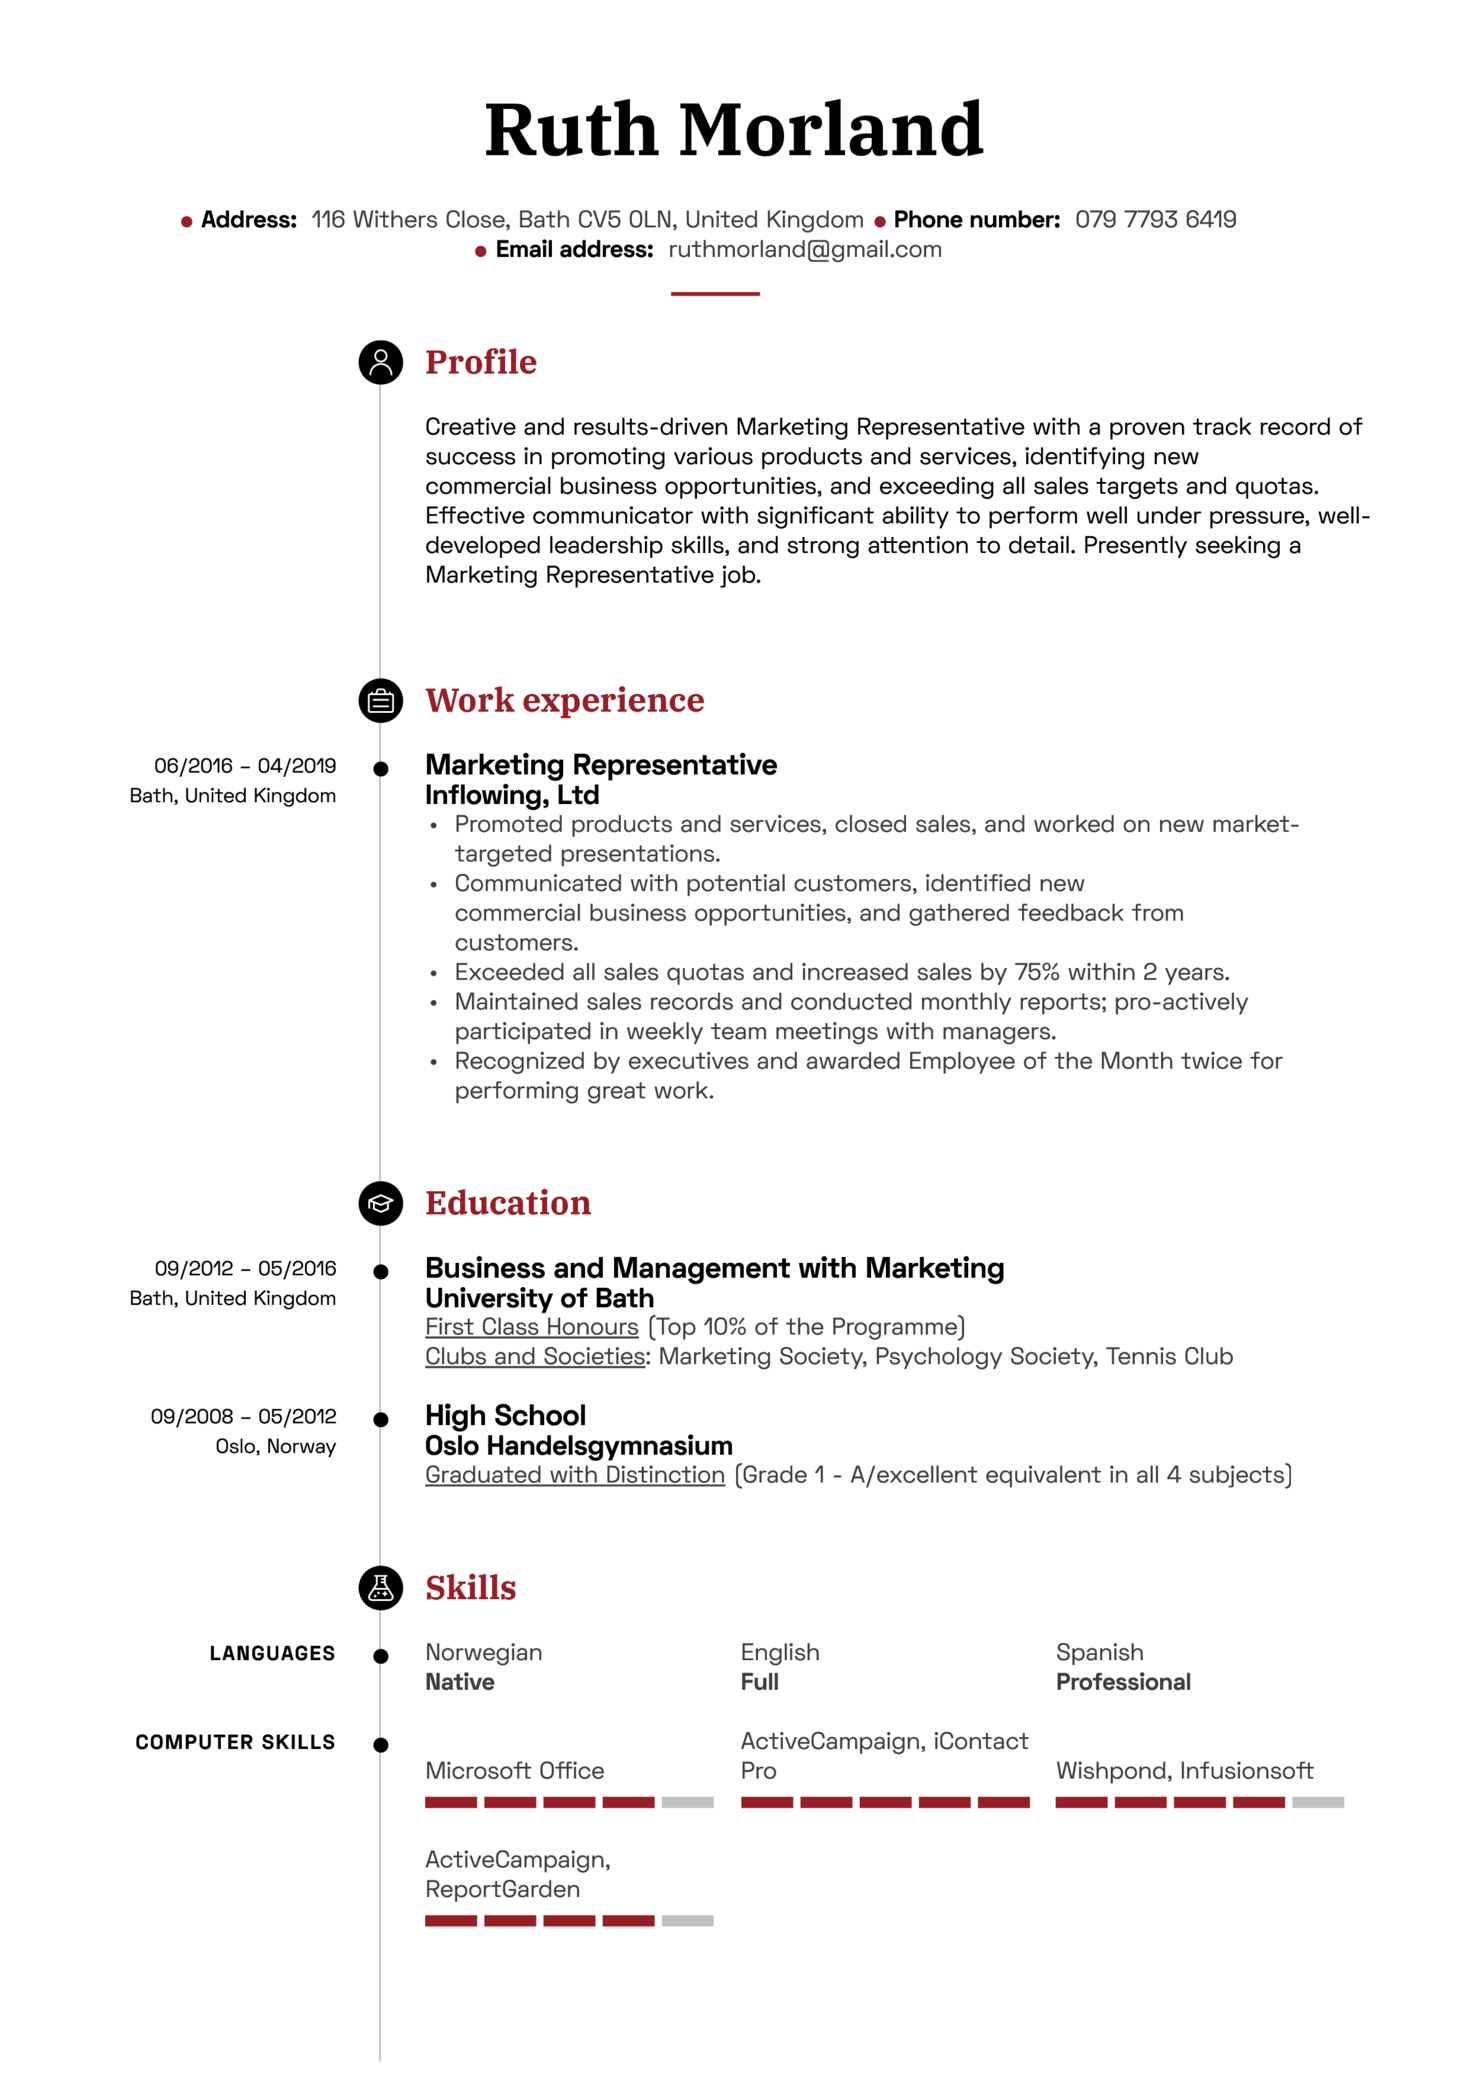 Marketing Representative Resume Sample (parte 1)